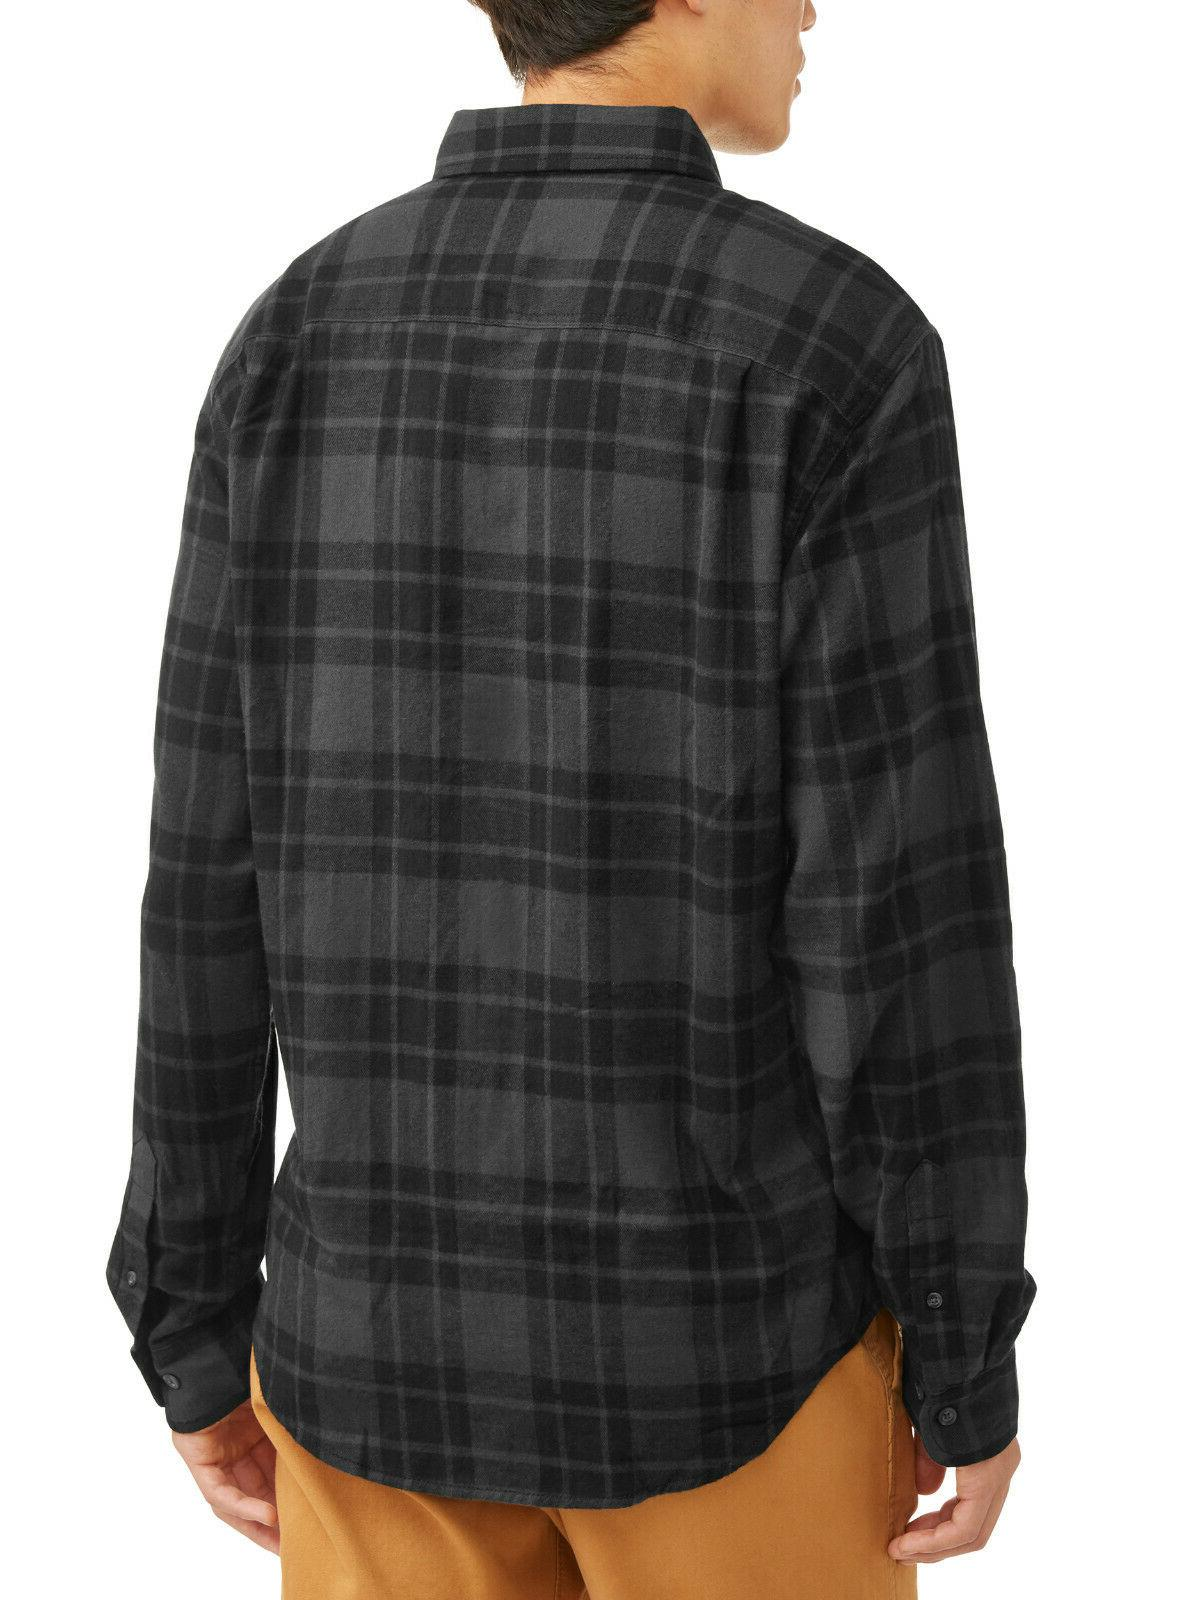 NEW Mens George Gray Plaid Cotton Flannel Button Shirt Large